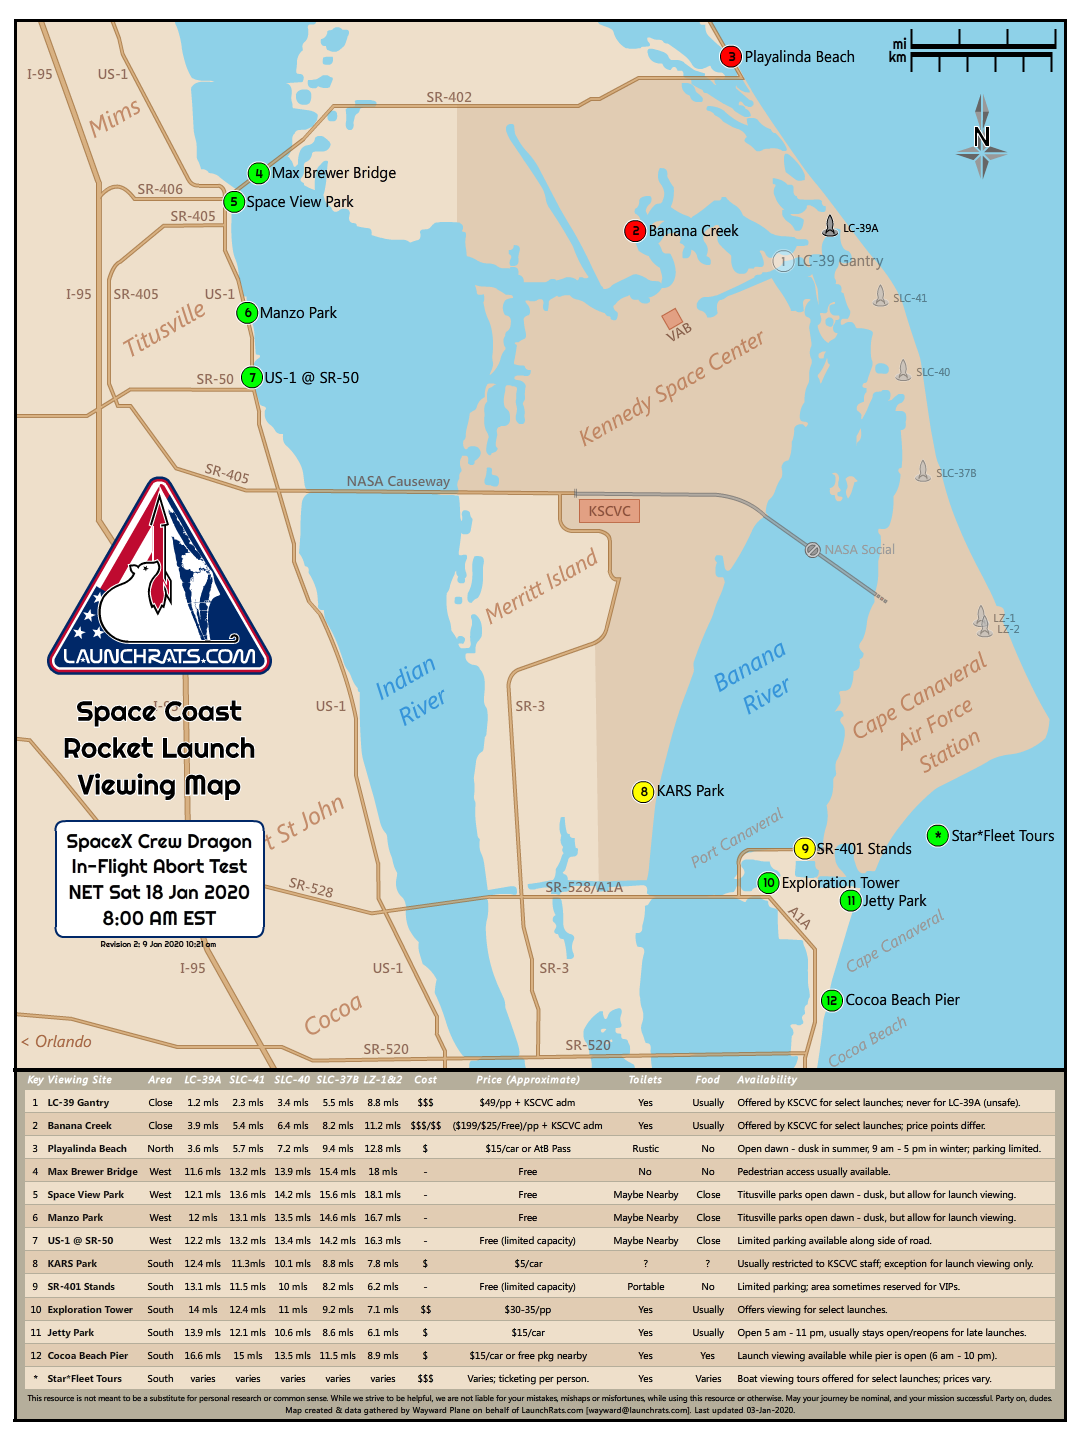 myakka map, southwest gulf coast map, cape kennedy map, frostproof map, cape blanco map, cape hatteras map, canaveral groves map, beach in indialantic fl map, lake okeechobee map, gladeview map, cape cod map, great basin map, south daytona beach map, canaveral port authority map, florida map, canaveral barge canal map, st. augustine map, key west map, cape flattery map, the everglades map, on cape canaveral map